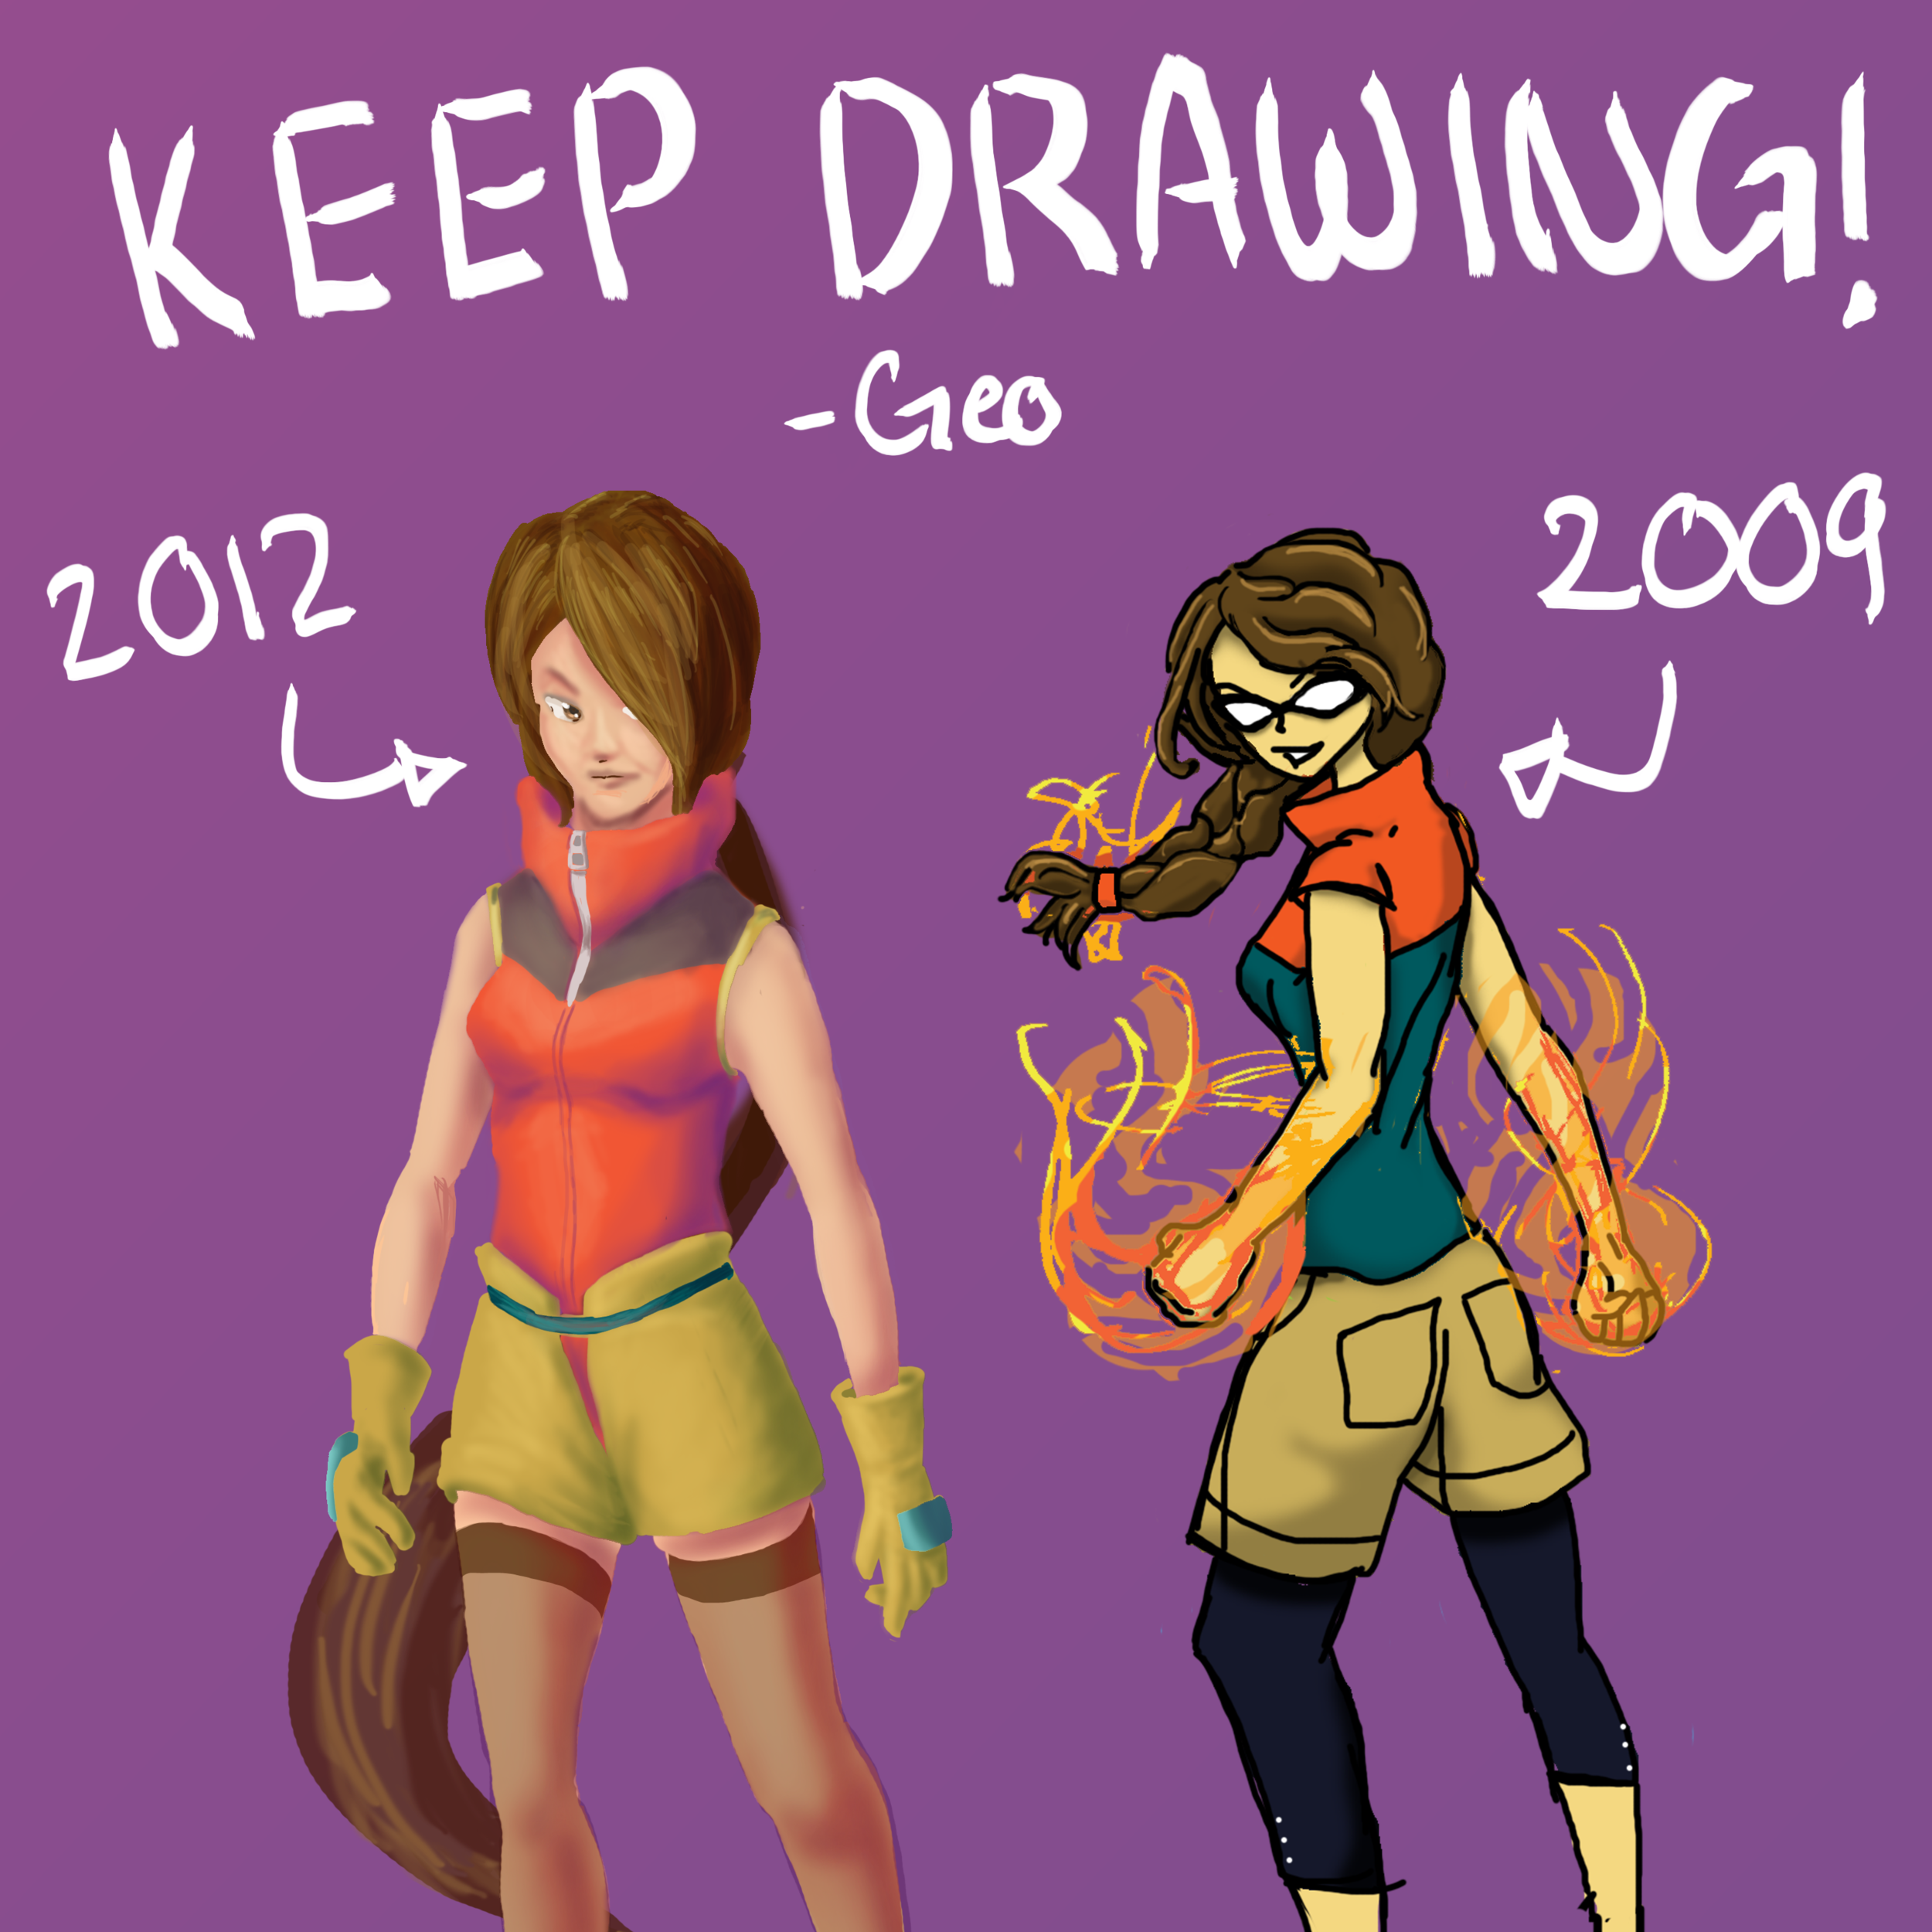 2012 and 2009 versions